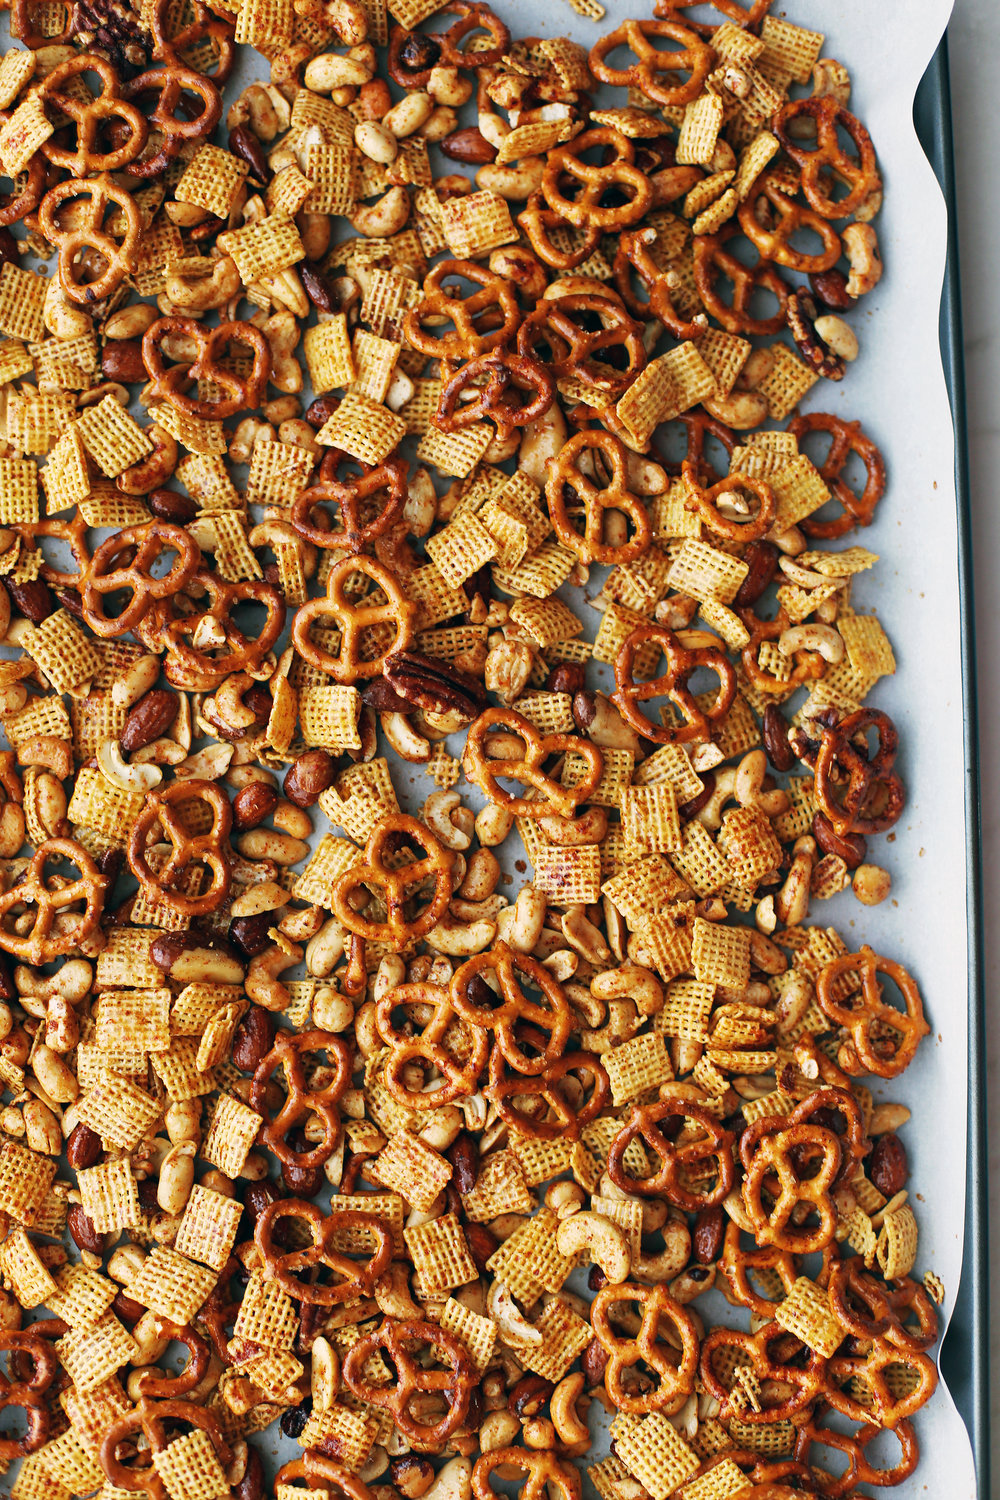 Baked Maple Chili Nuts and Chex Snack Mix on a parchment paper lined baking sheet.